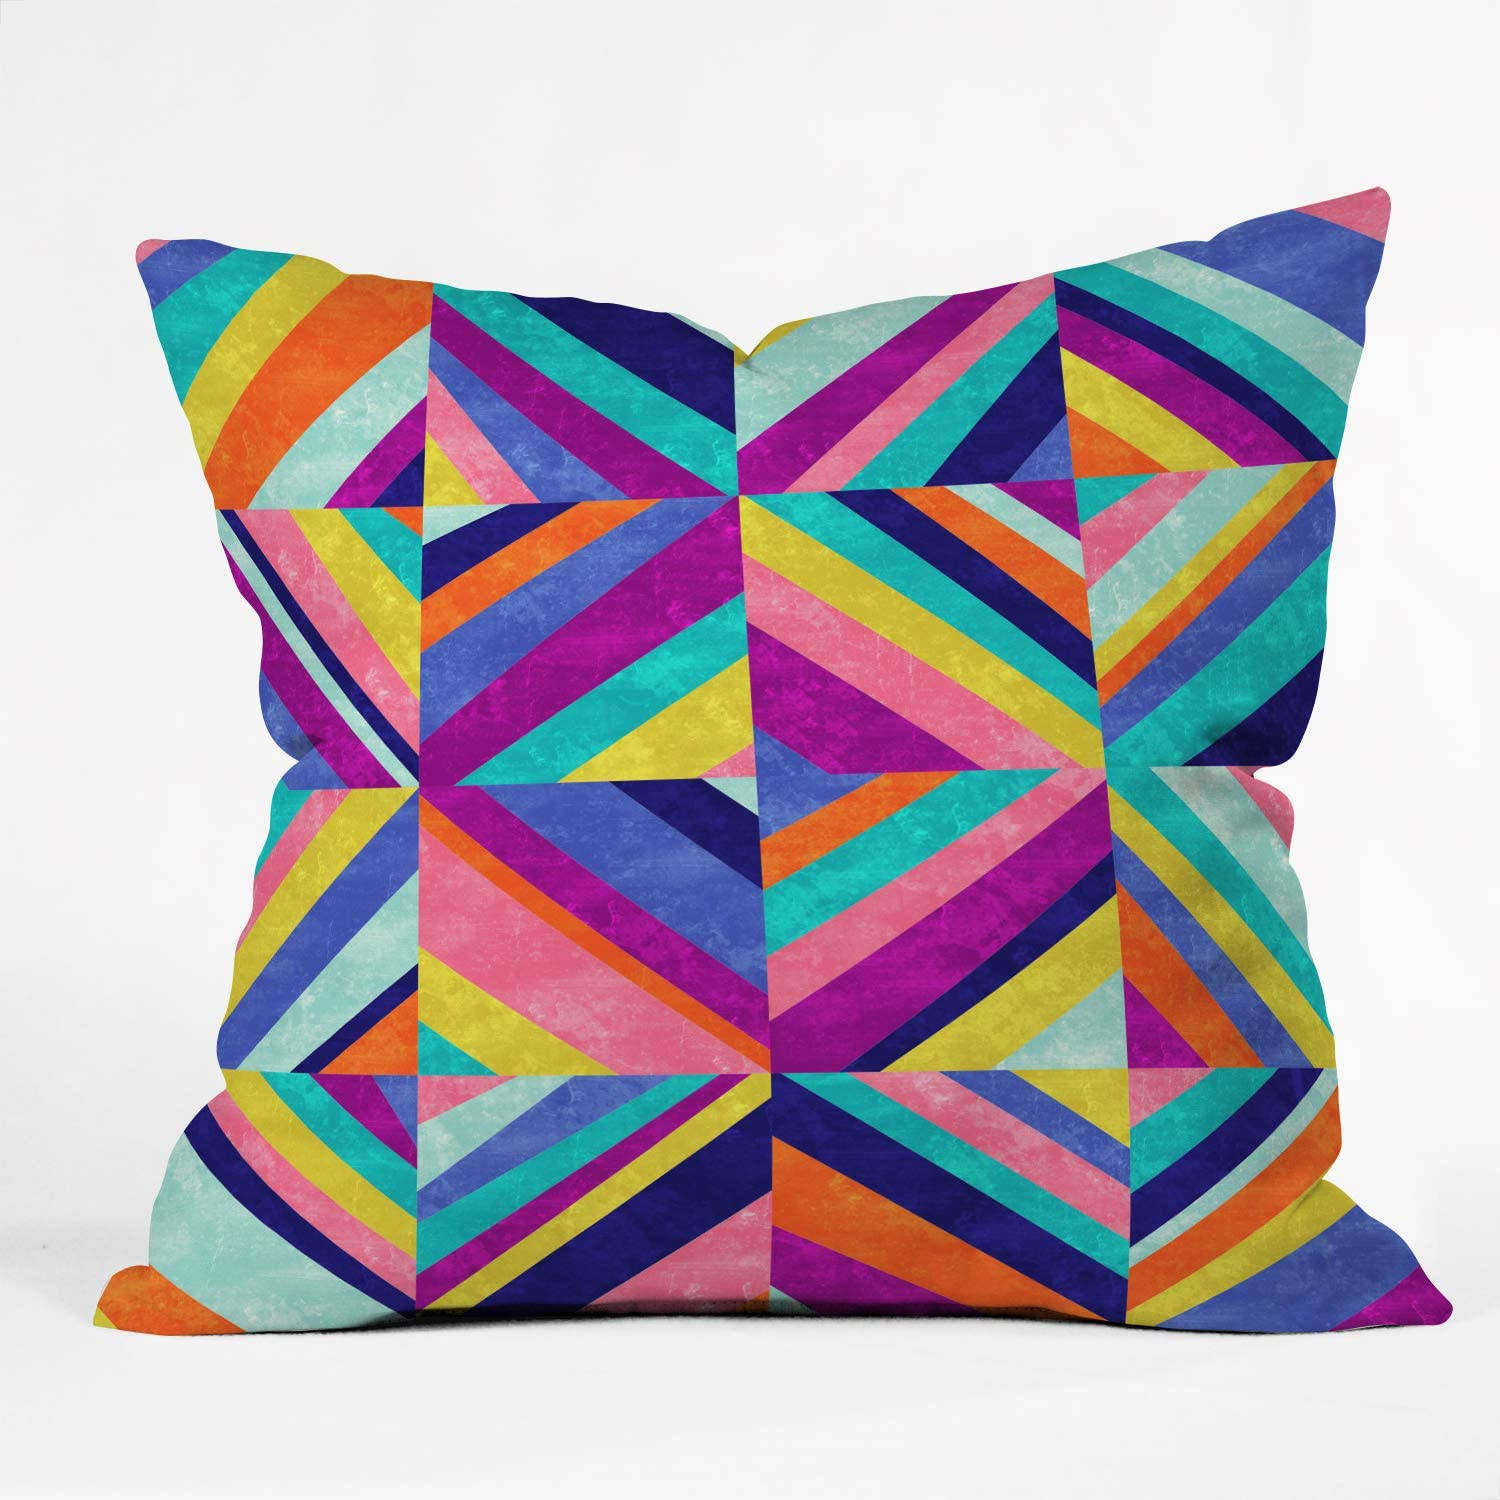 Classic Deny Designs Jacqueline Maldonado Hybrid All items in the store 1 Throw Pillow Indoor